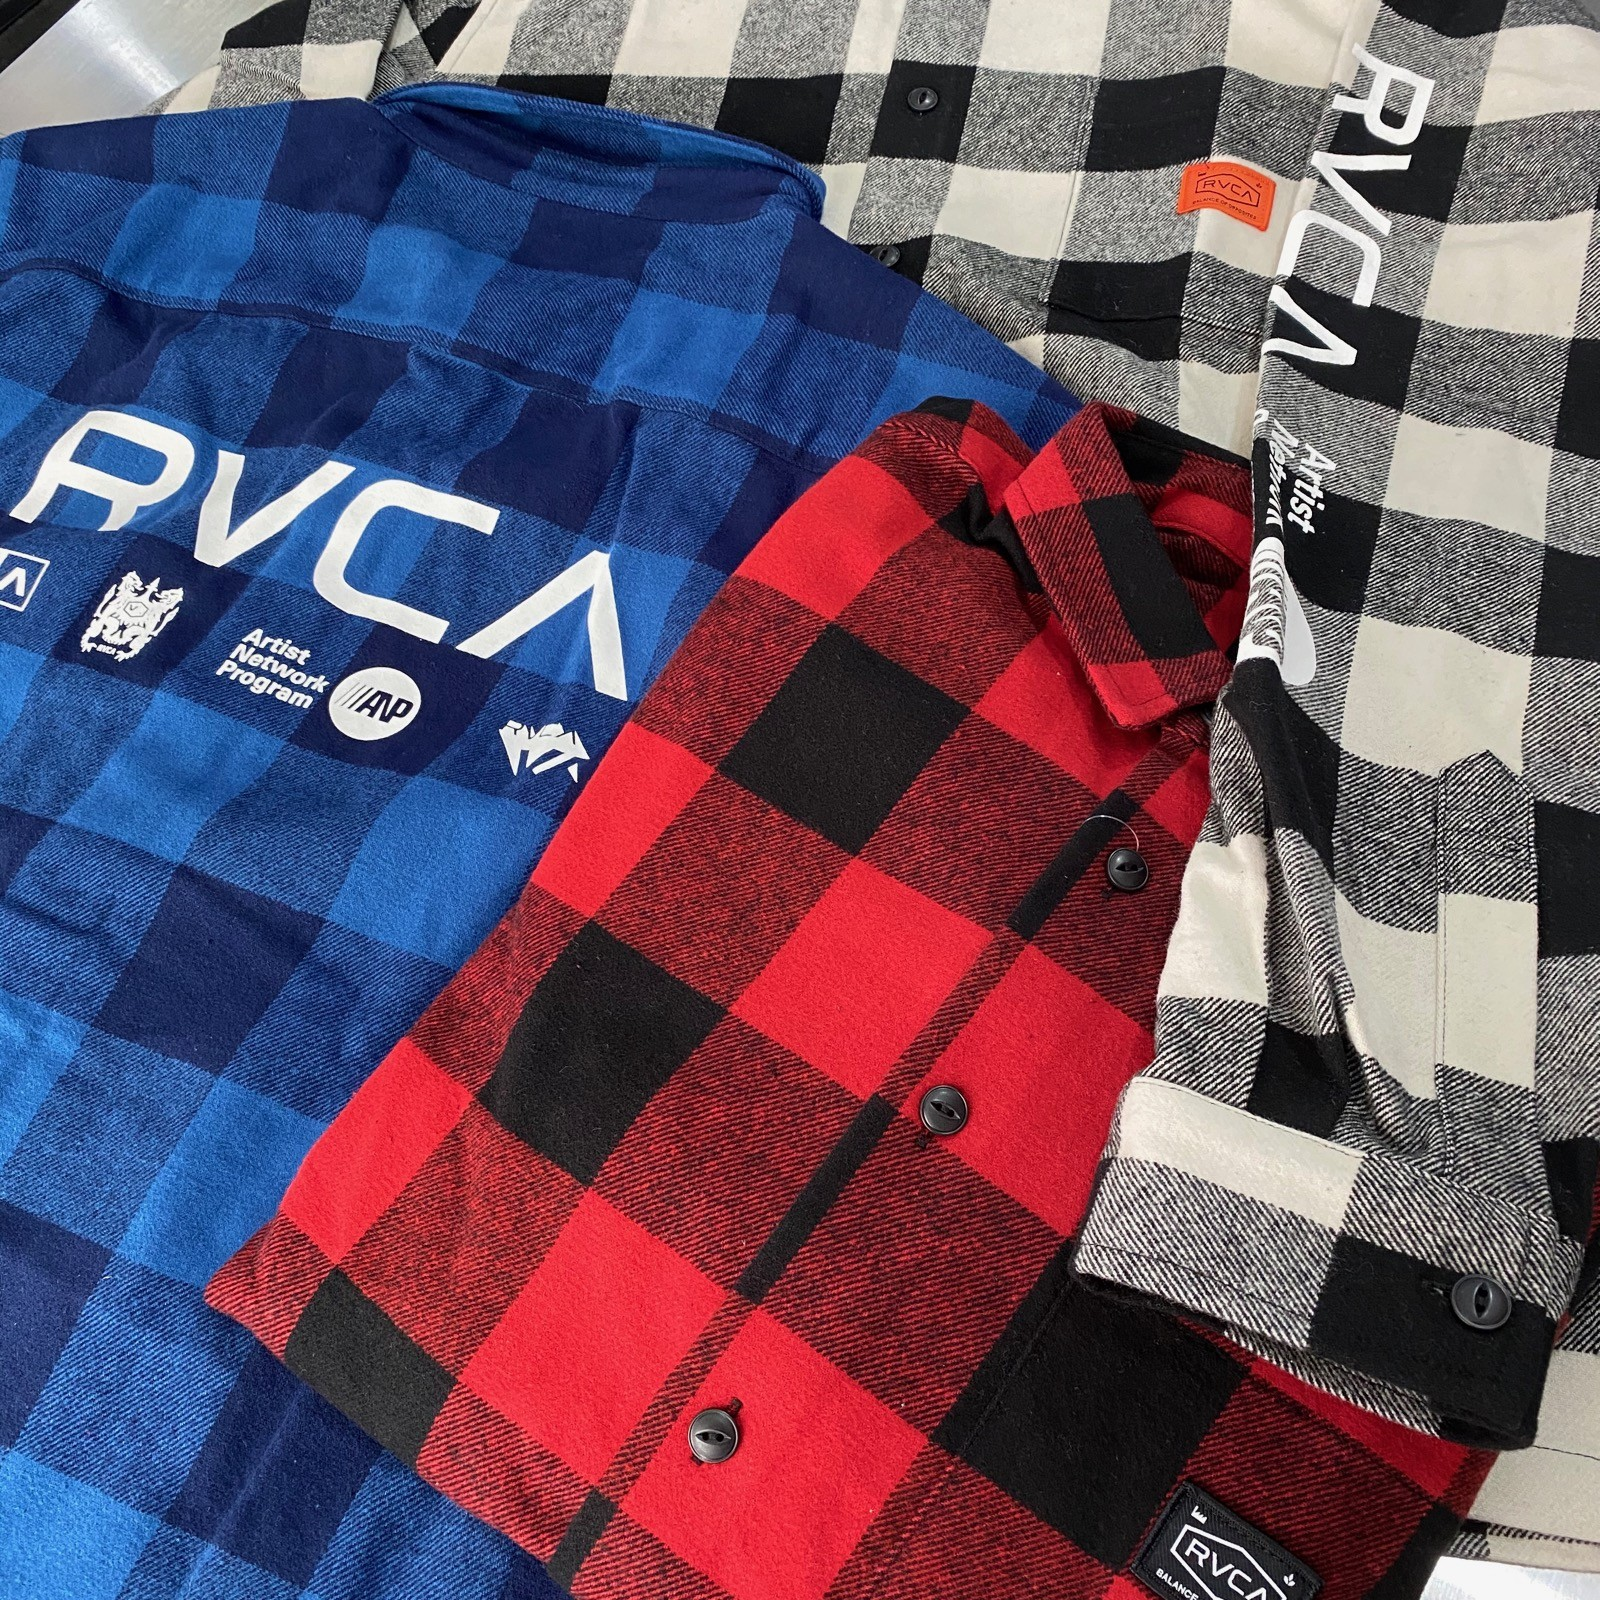 RVCA 2020 Fall Collection start !!!